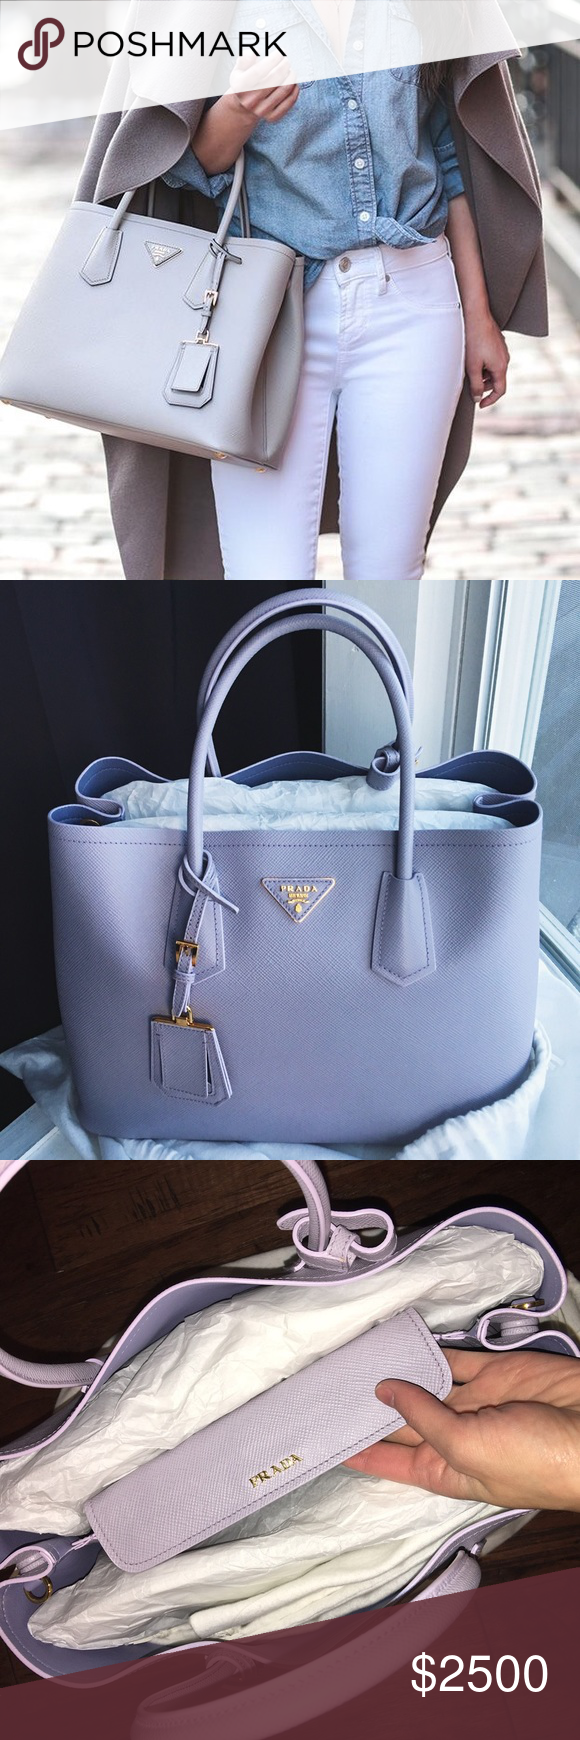 16d40d6d399f inexpensive 100 brand new prada saffiano cuir double bag. price reduce  b7e2a 082f1  discount 30 price drop prada saffiano cuir double tote this  rare ...